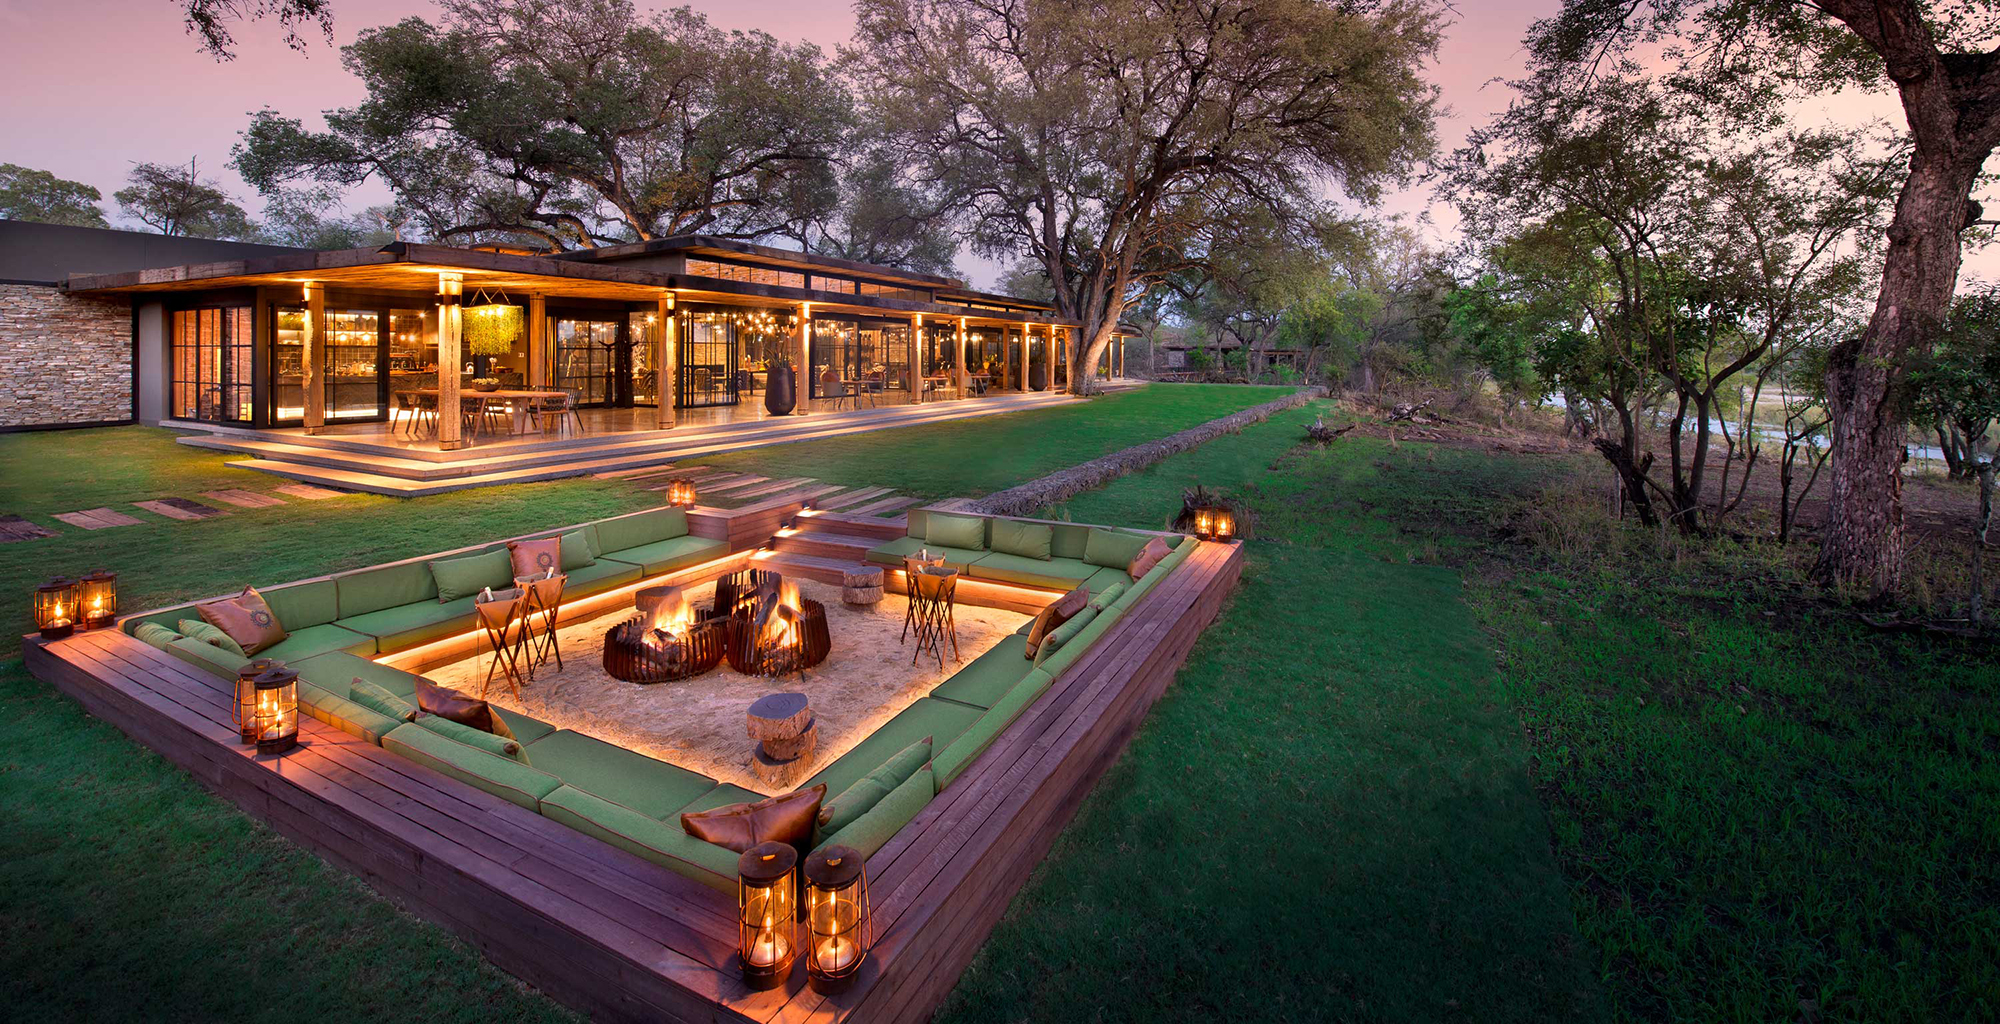 South-Africa-Tengile-River-Lodge-Firepit